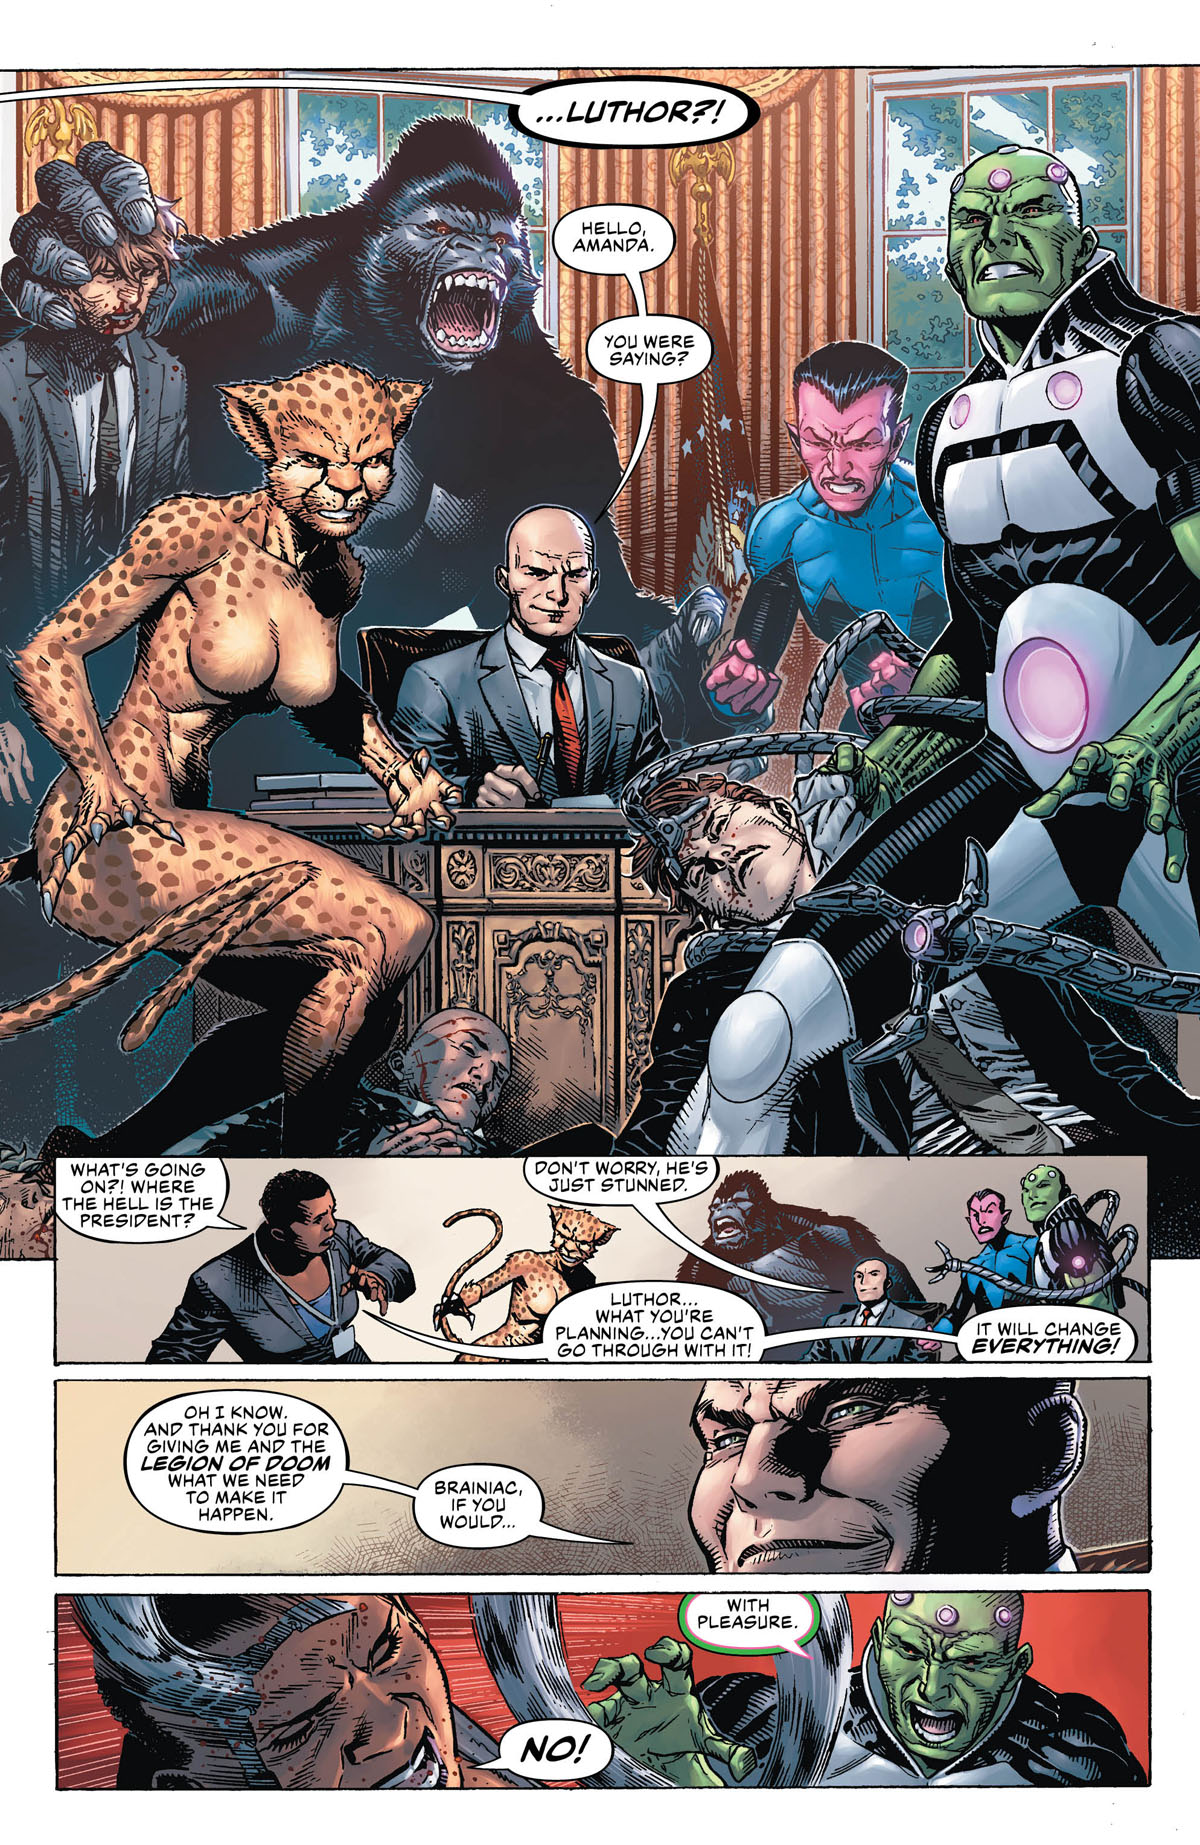 DC's Year of the Villain #1 page 2